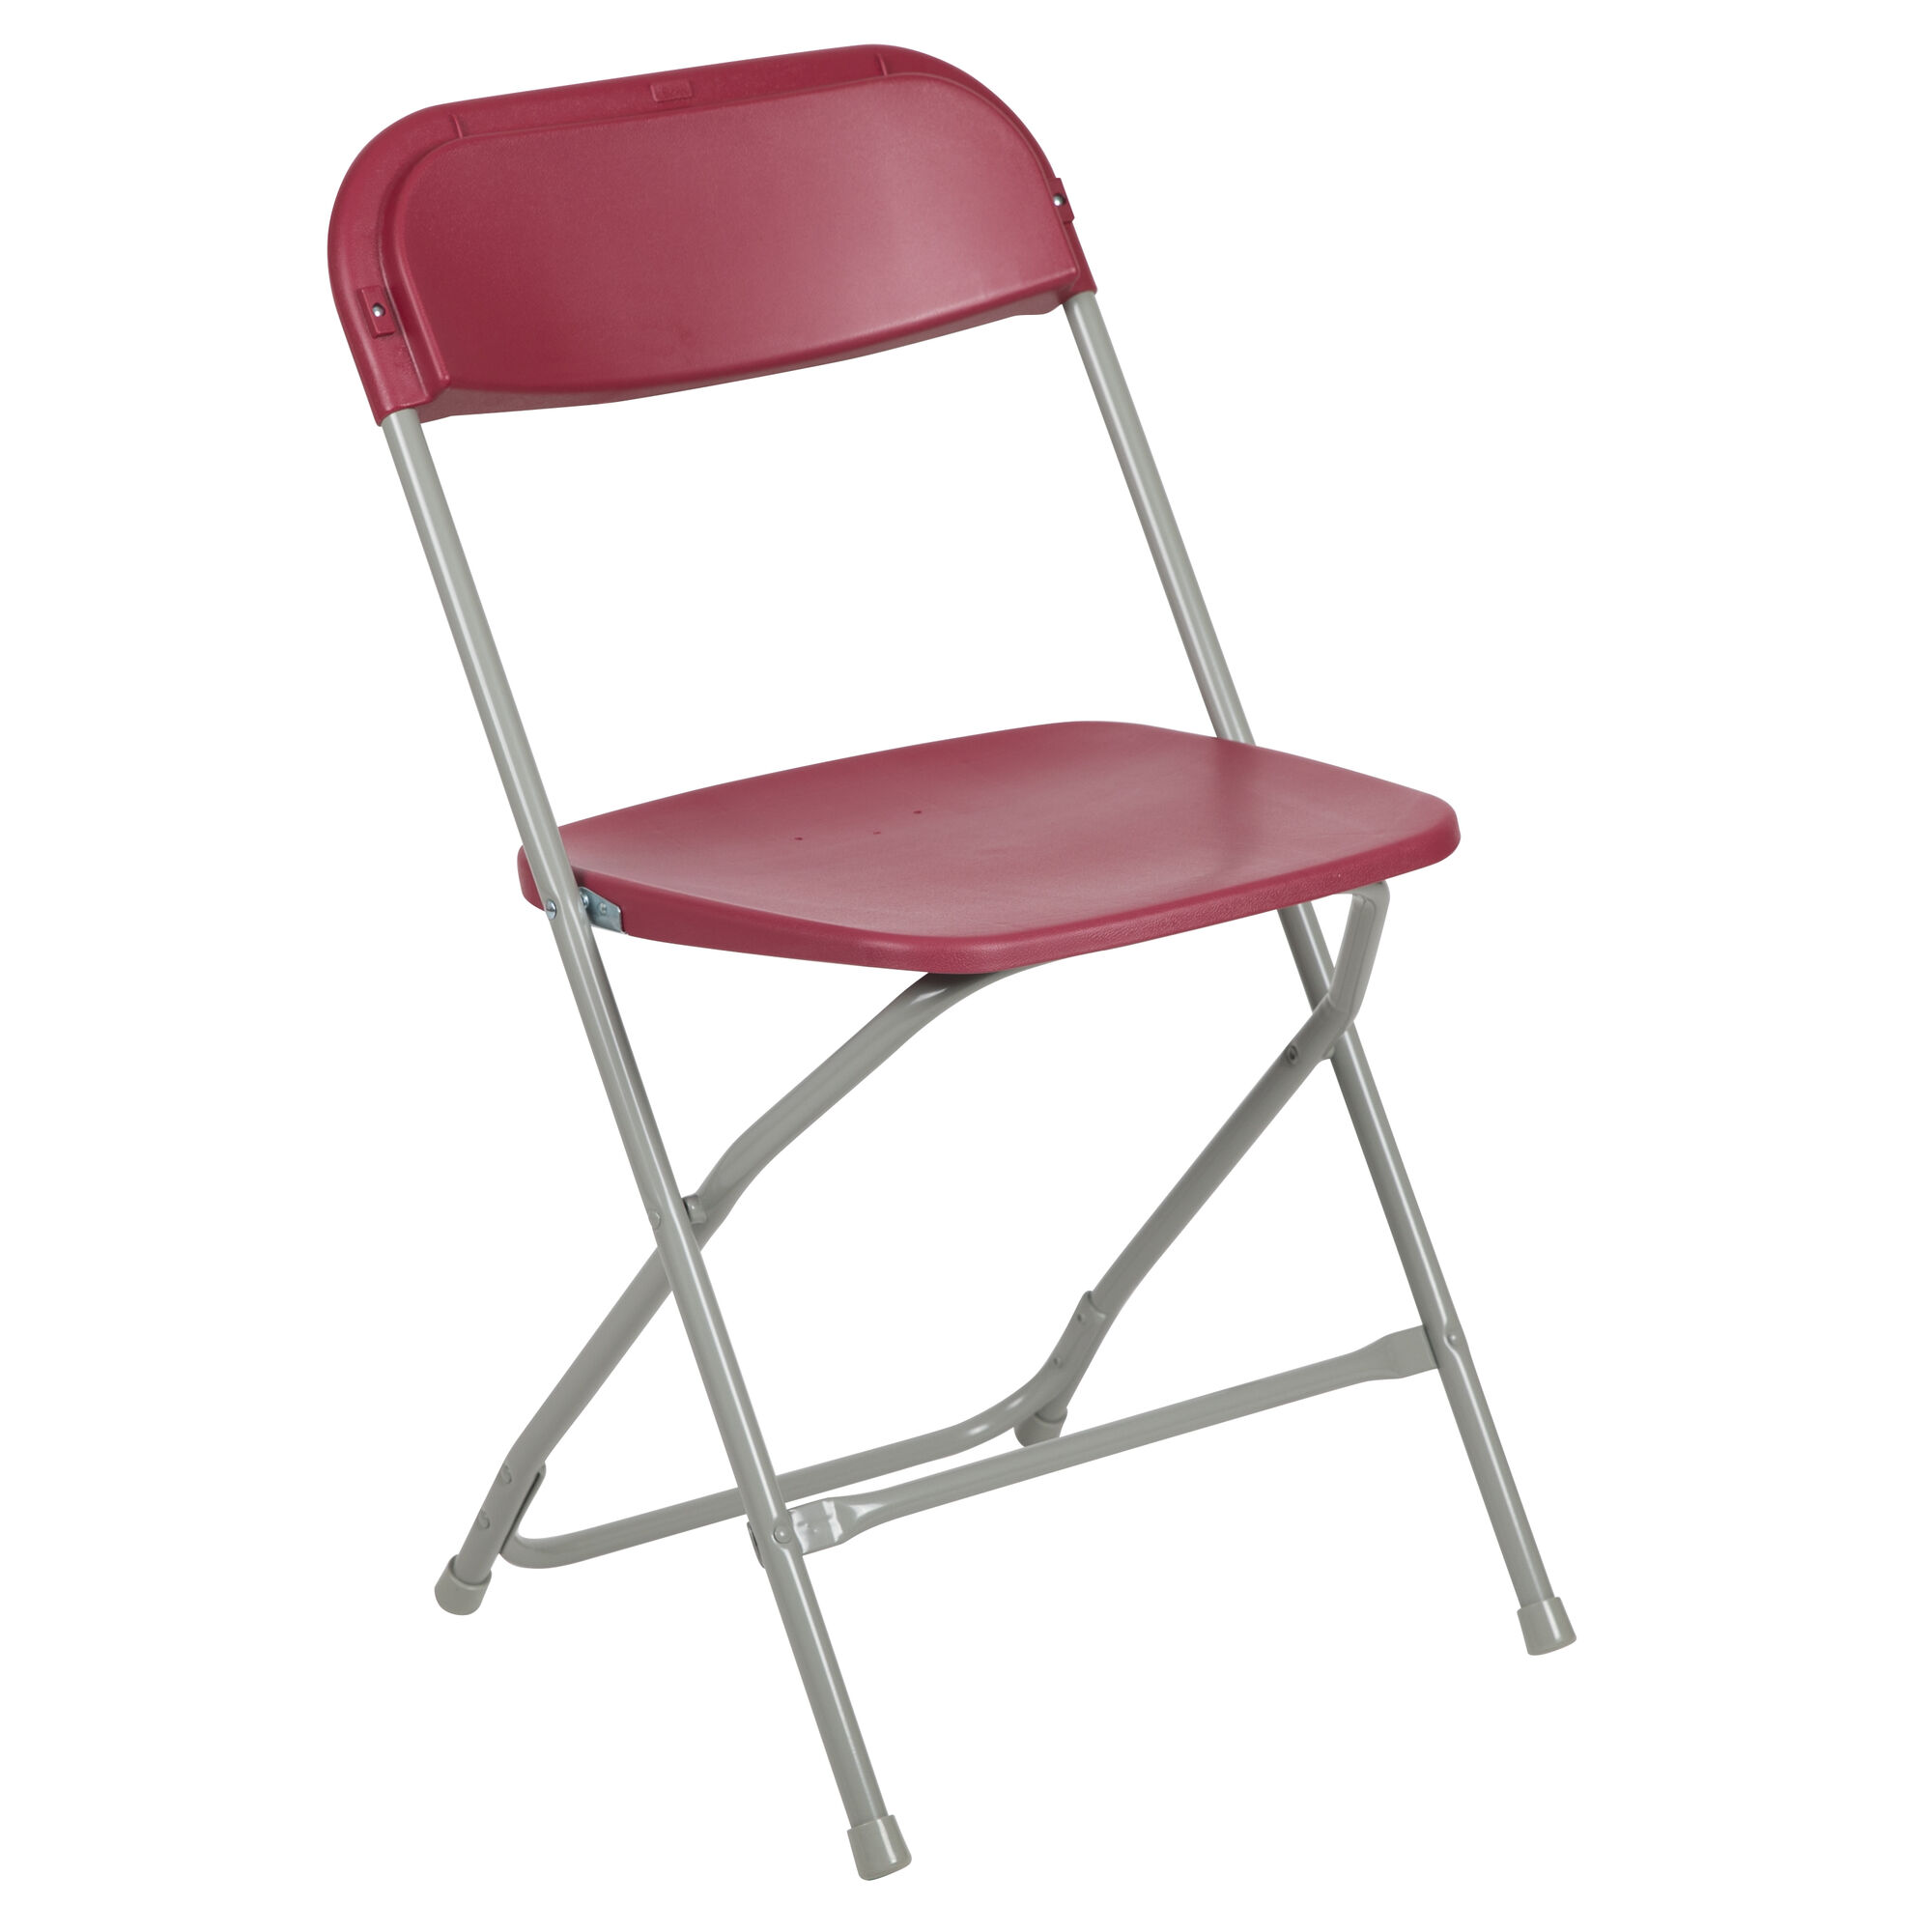 Red Plastic Folding Chair Le L 3 Red Gg Foldingchairs4less Com